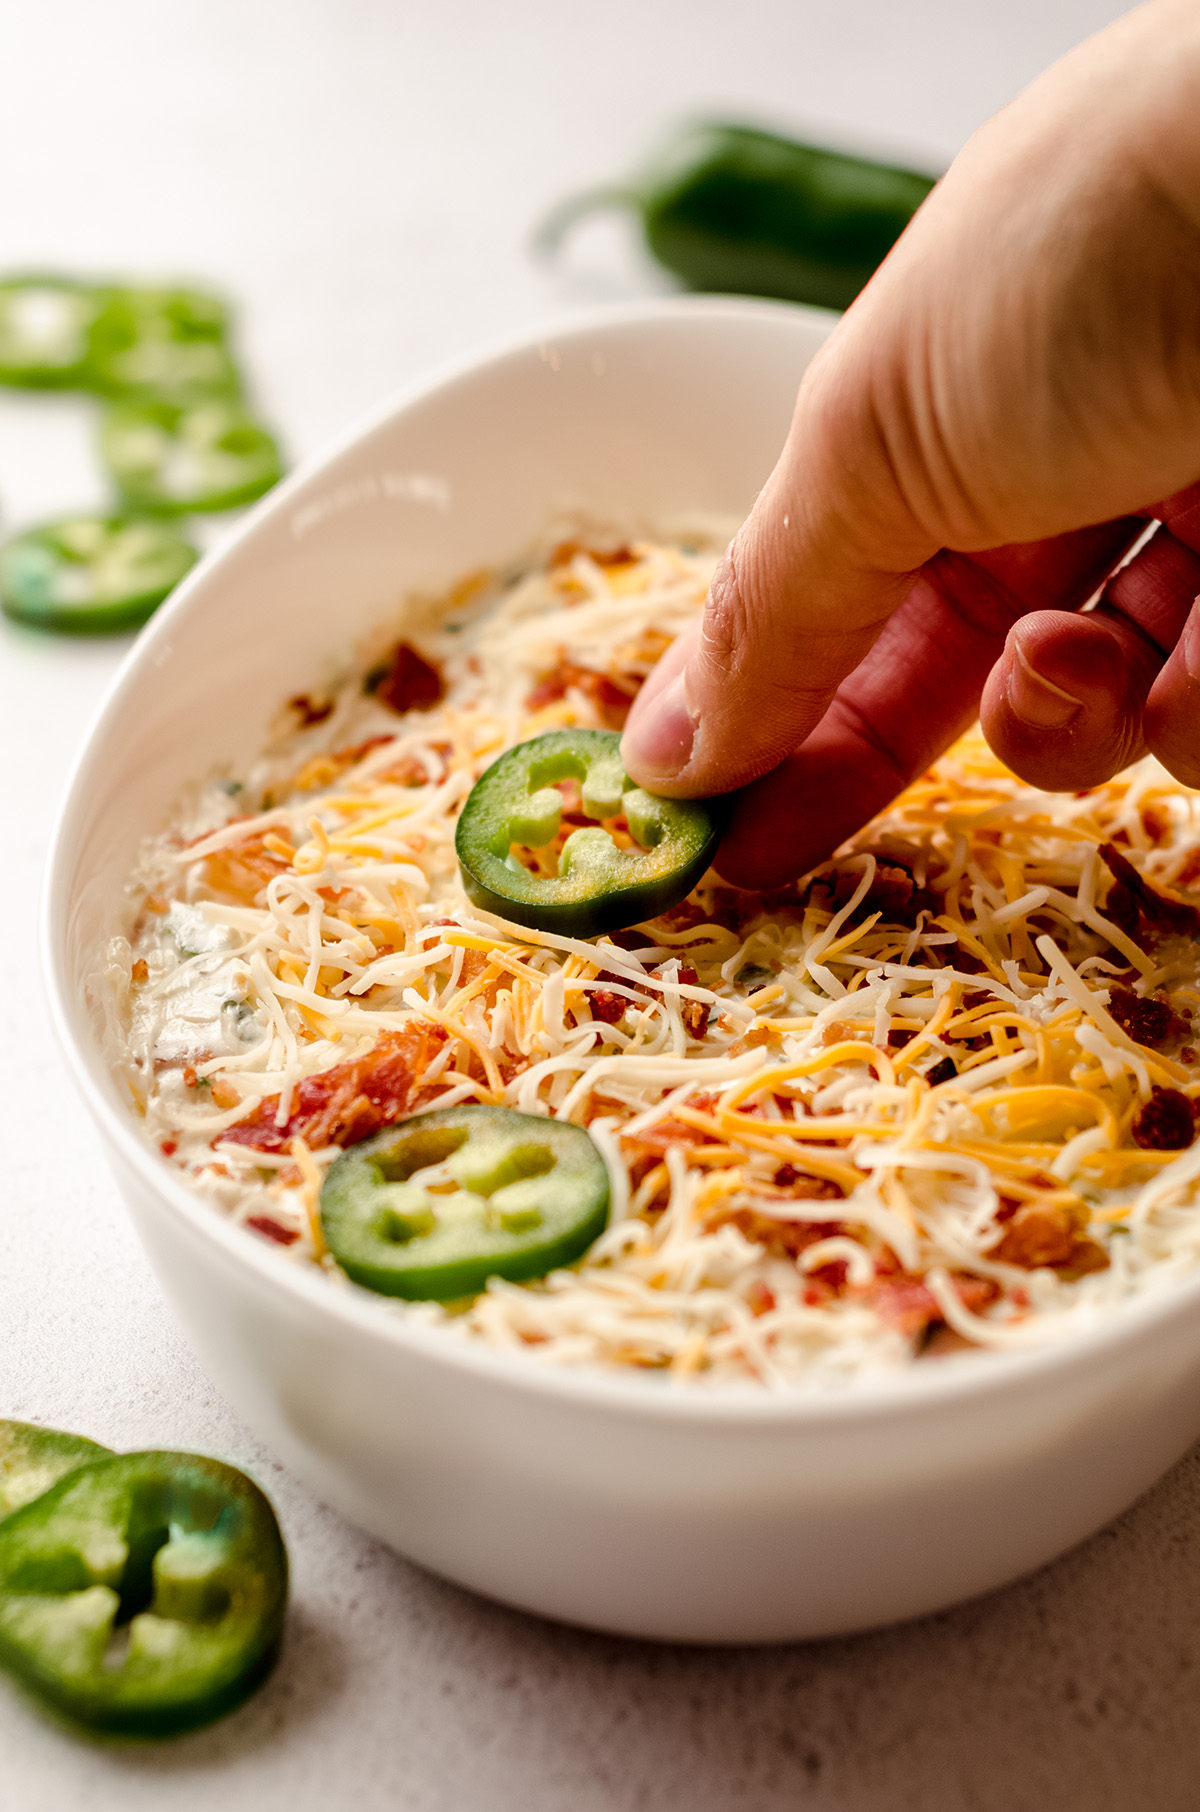 hand placing a slice of jalapeno pepper on top of jalapeno cream cheese dip before baking it